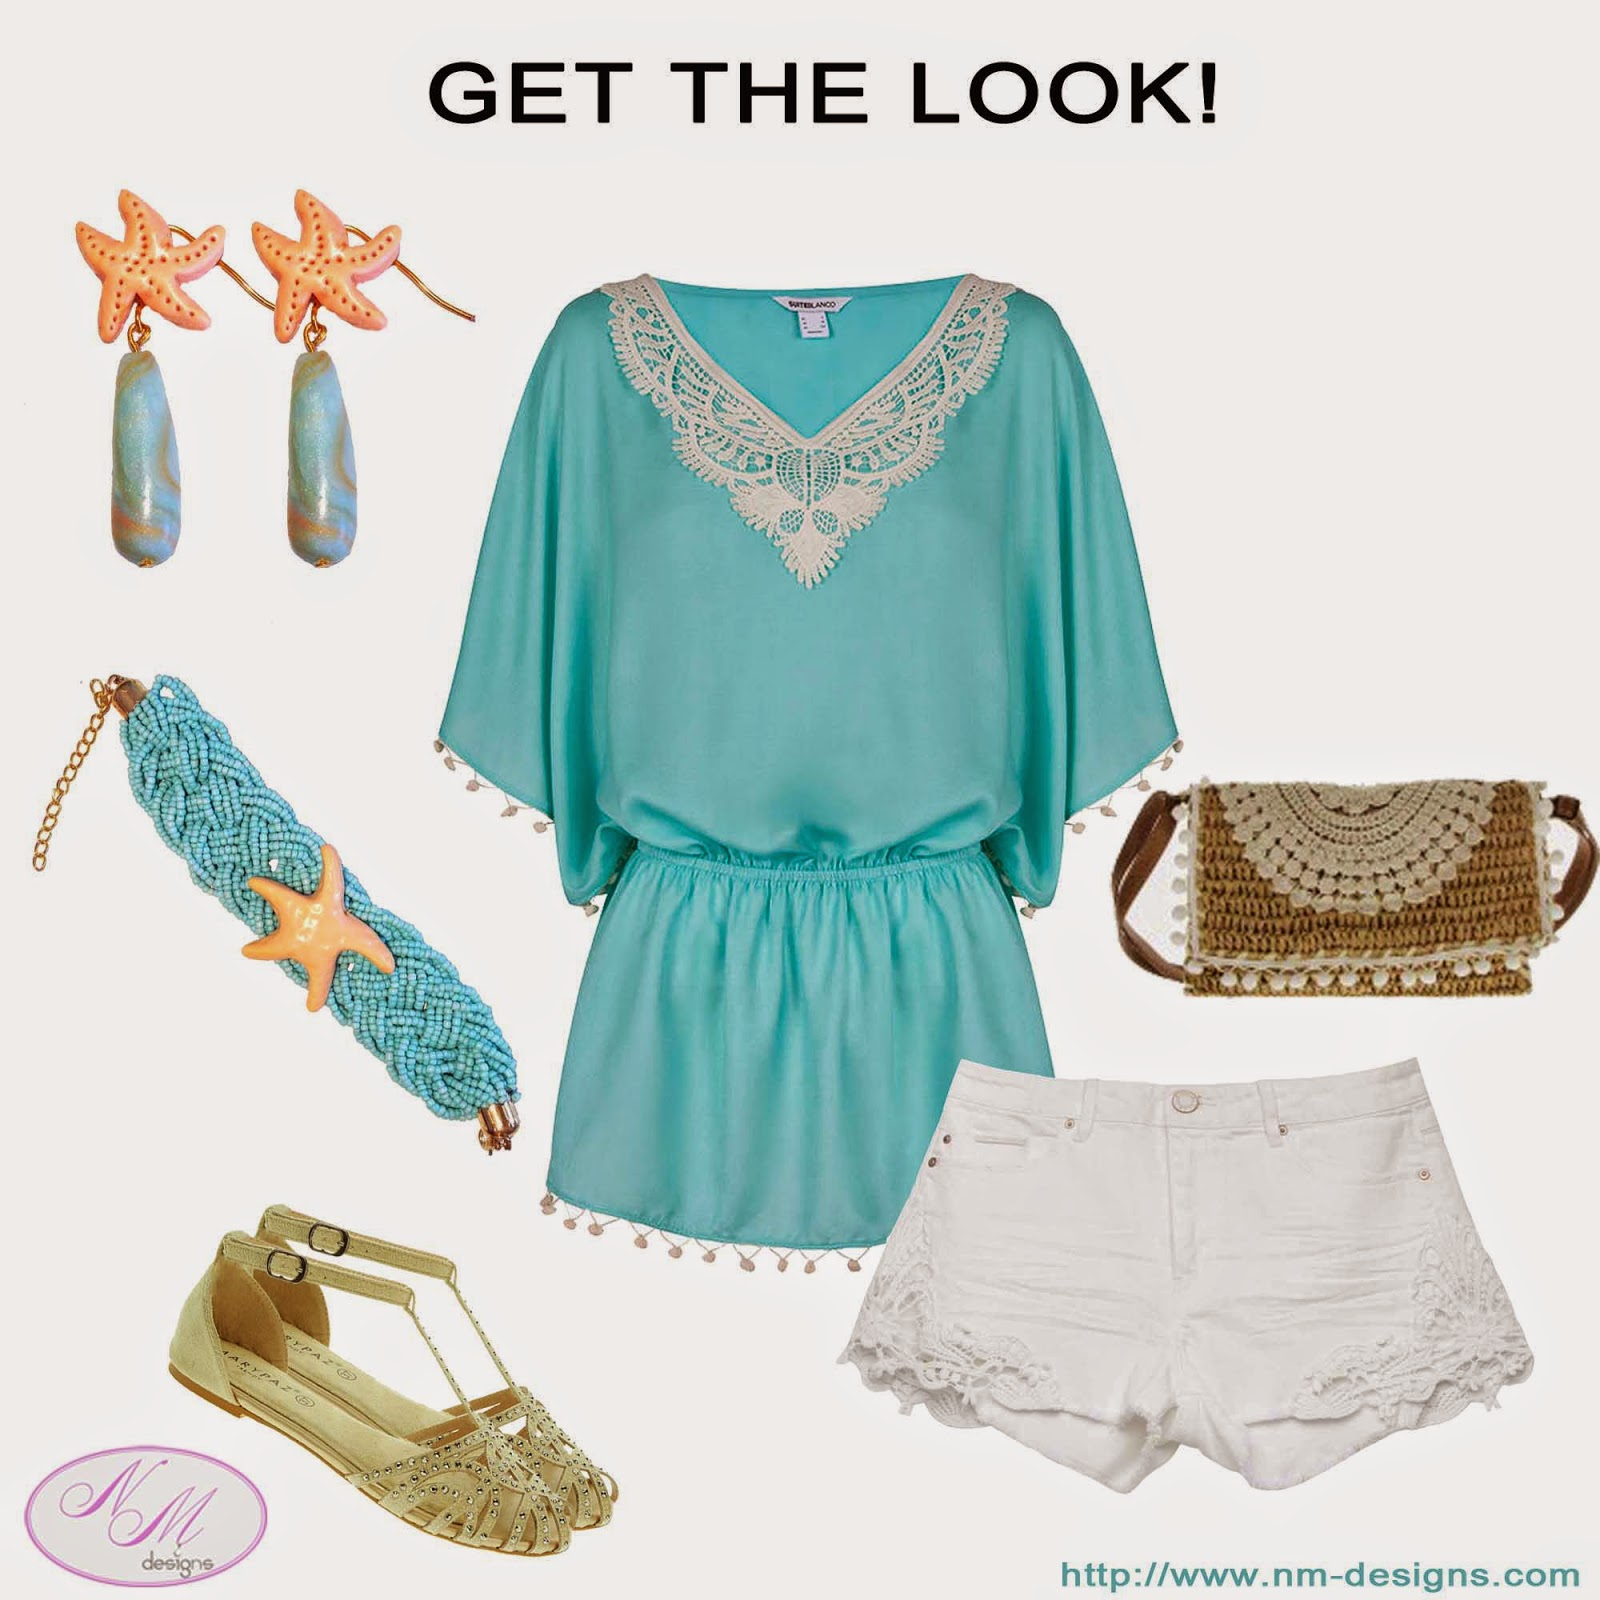 GET THE LOOK from July 30, 2014